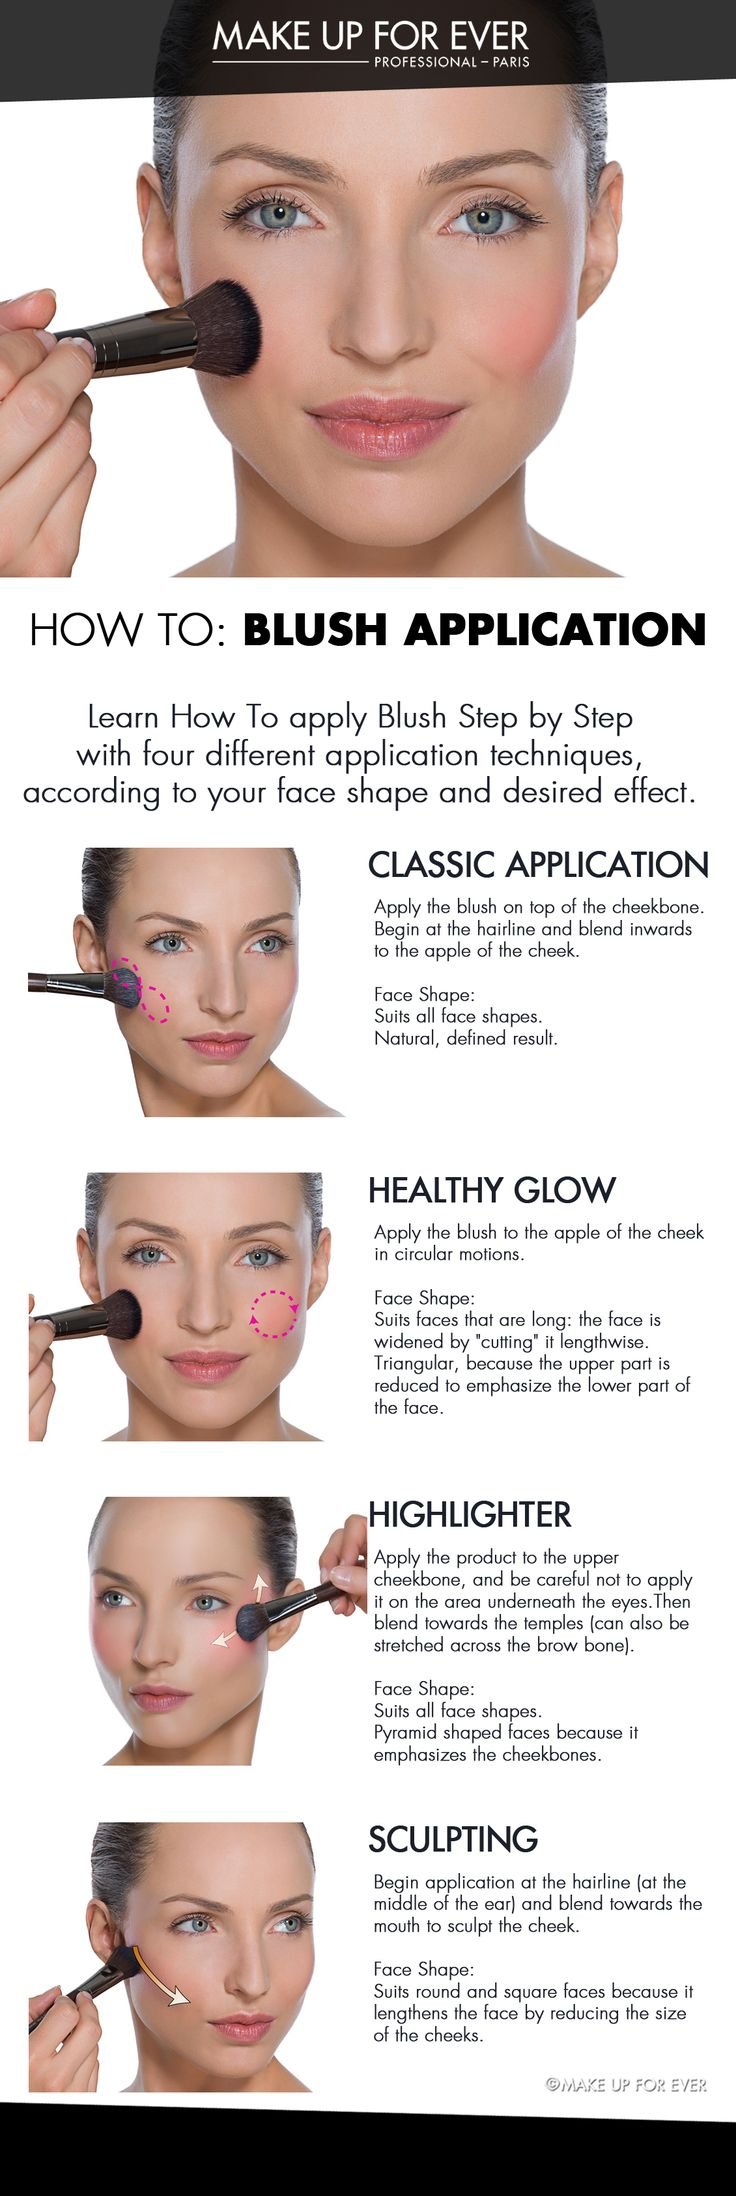 How To: Blush Application.  Learn How To apply blush step by step with 4 different application techniques